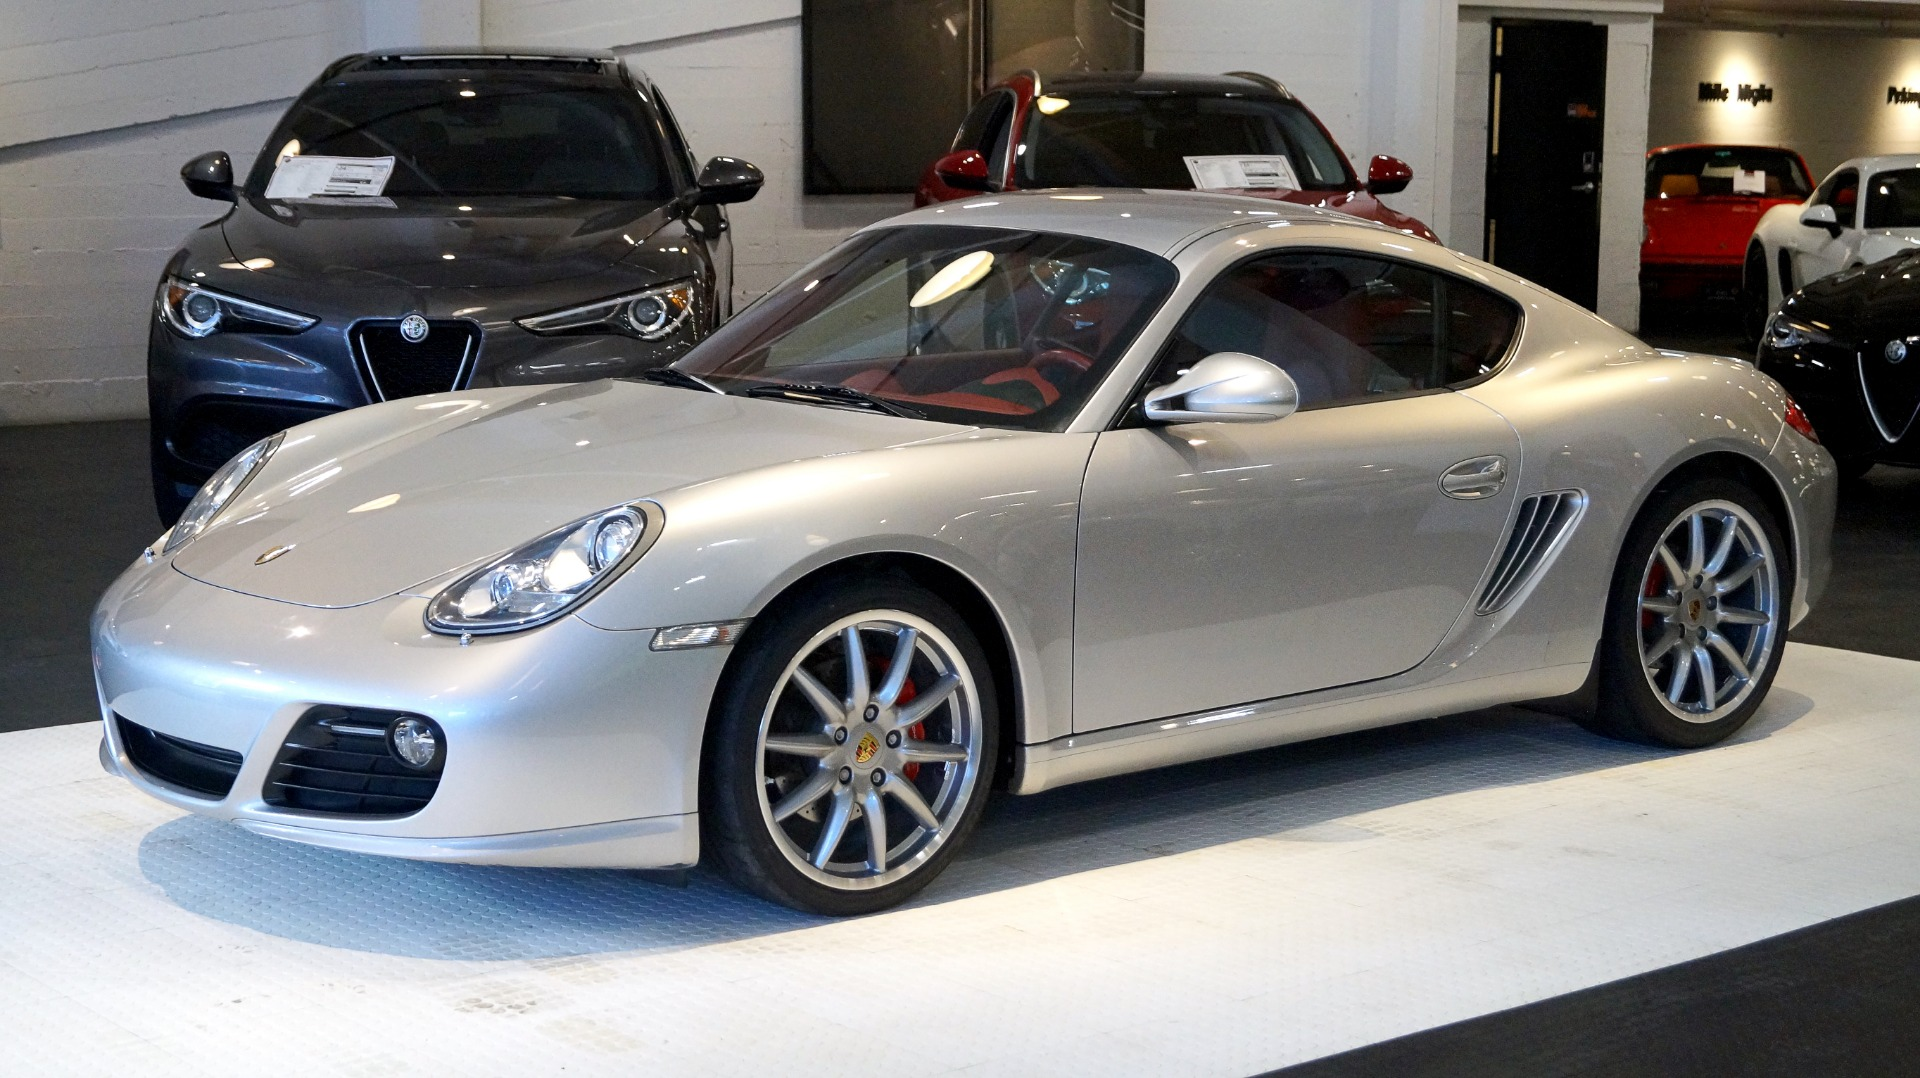 2009 Porsche Cayman S For Sale